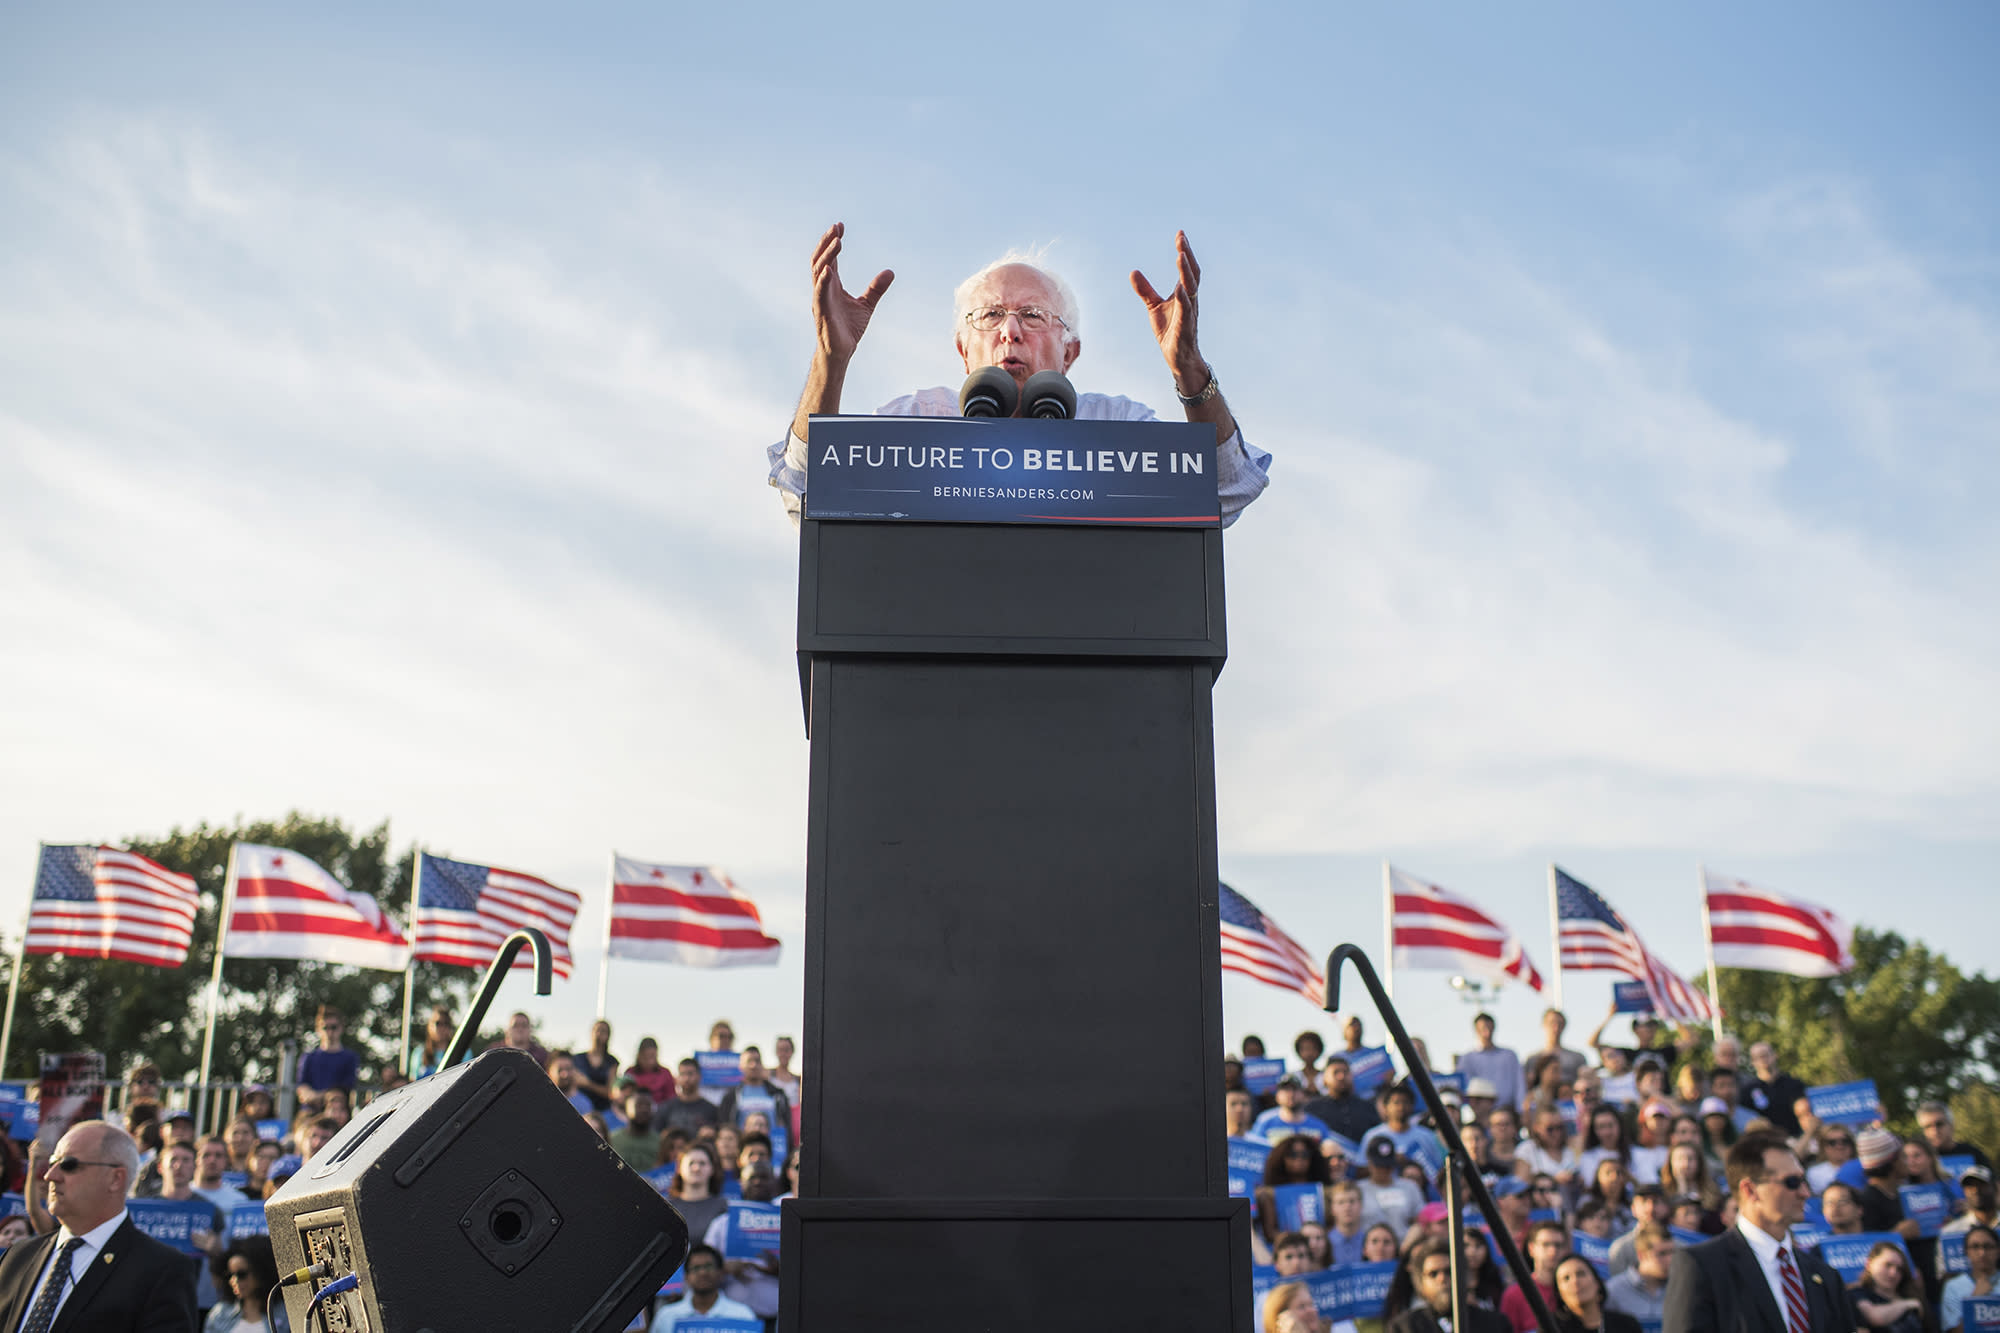 """His candidacy has shown the depths of frustration. I'm glad he ran,"" said Laura Richards, a longtime D.C. political activist, about Sanders. (Photo: Tom Williams/CQ Roll Call via Getty Images)"